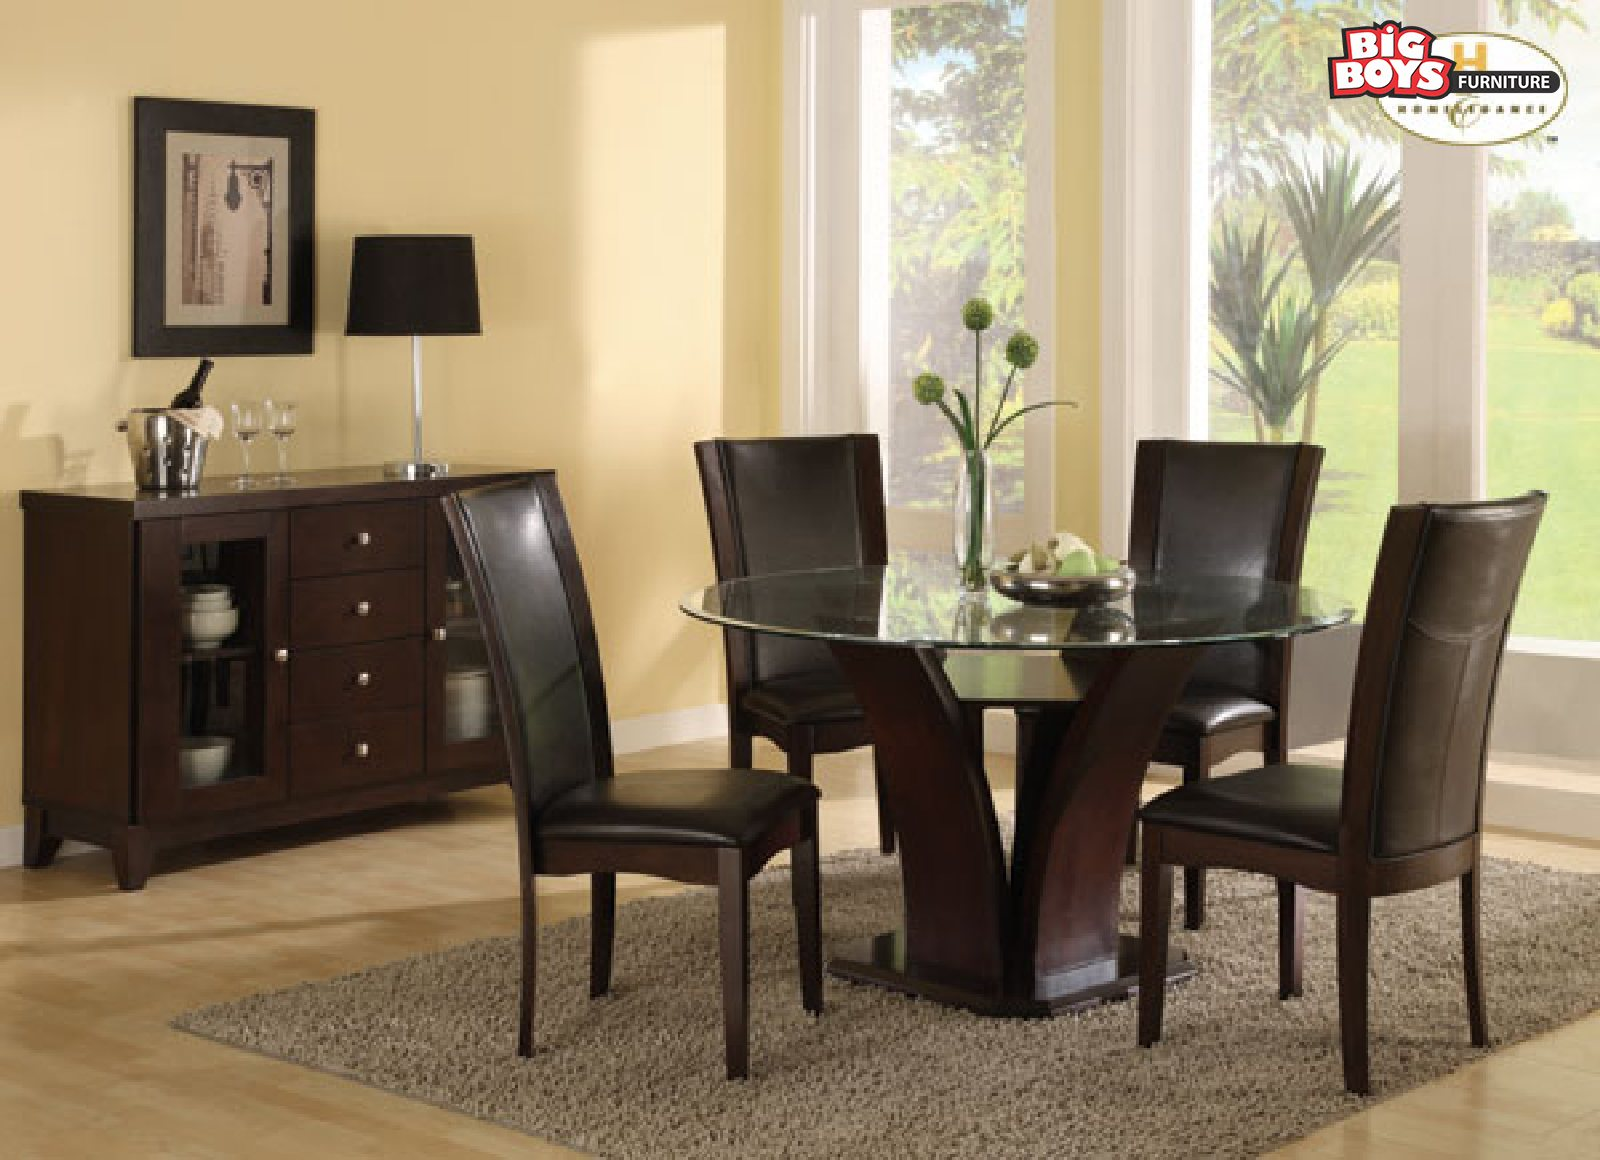 Latest designs of Center table and chairs